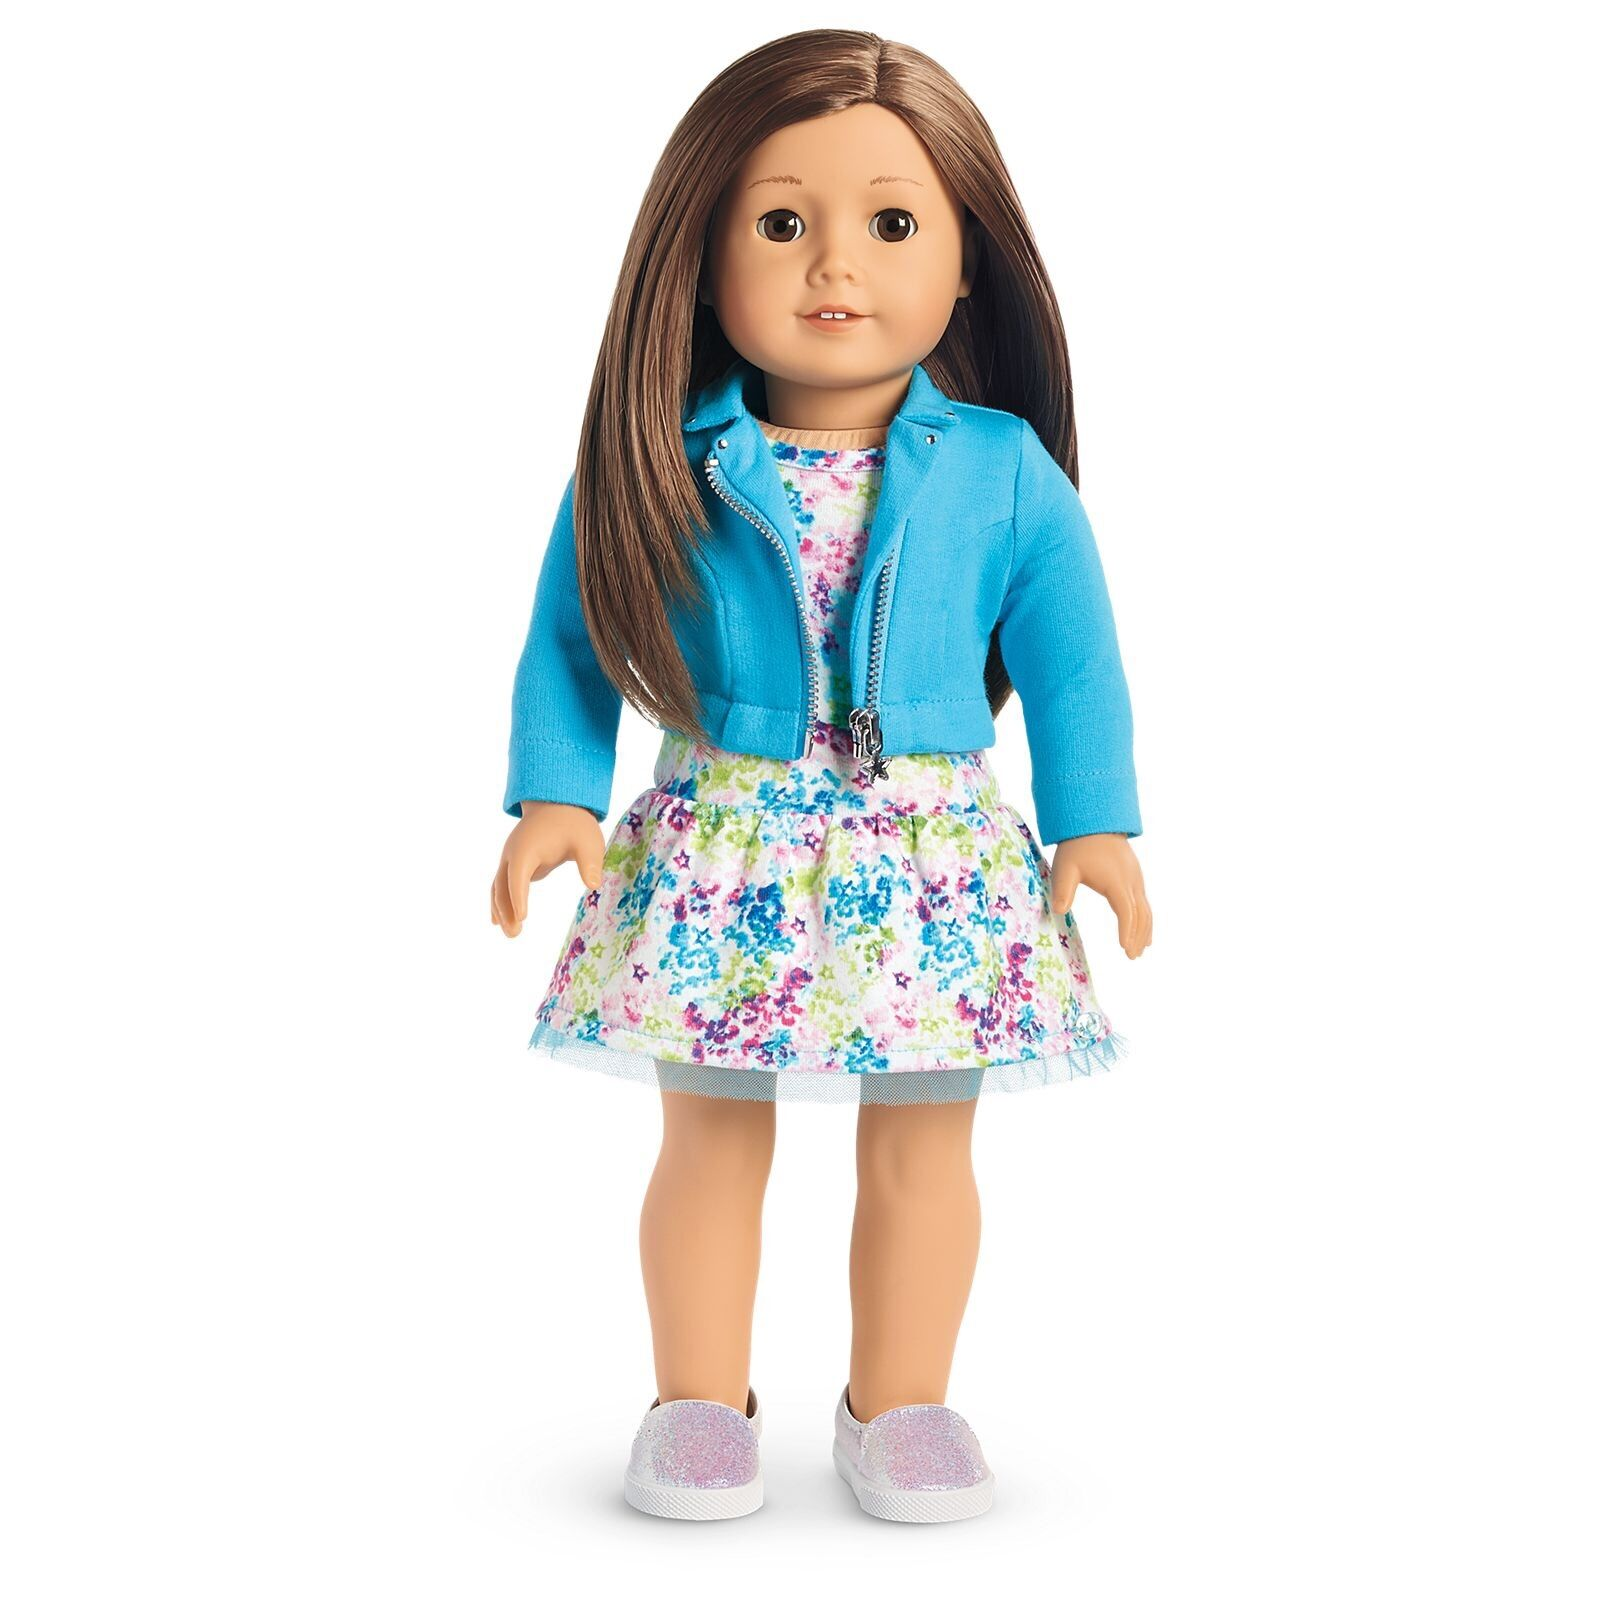 american girl truly me doll 59 brand new brown hair w dress moto jacket shoes. Black Bedroom Furniture Sets. Home Design Ideas